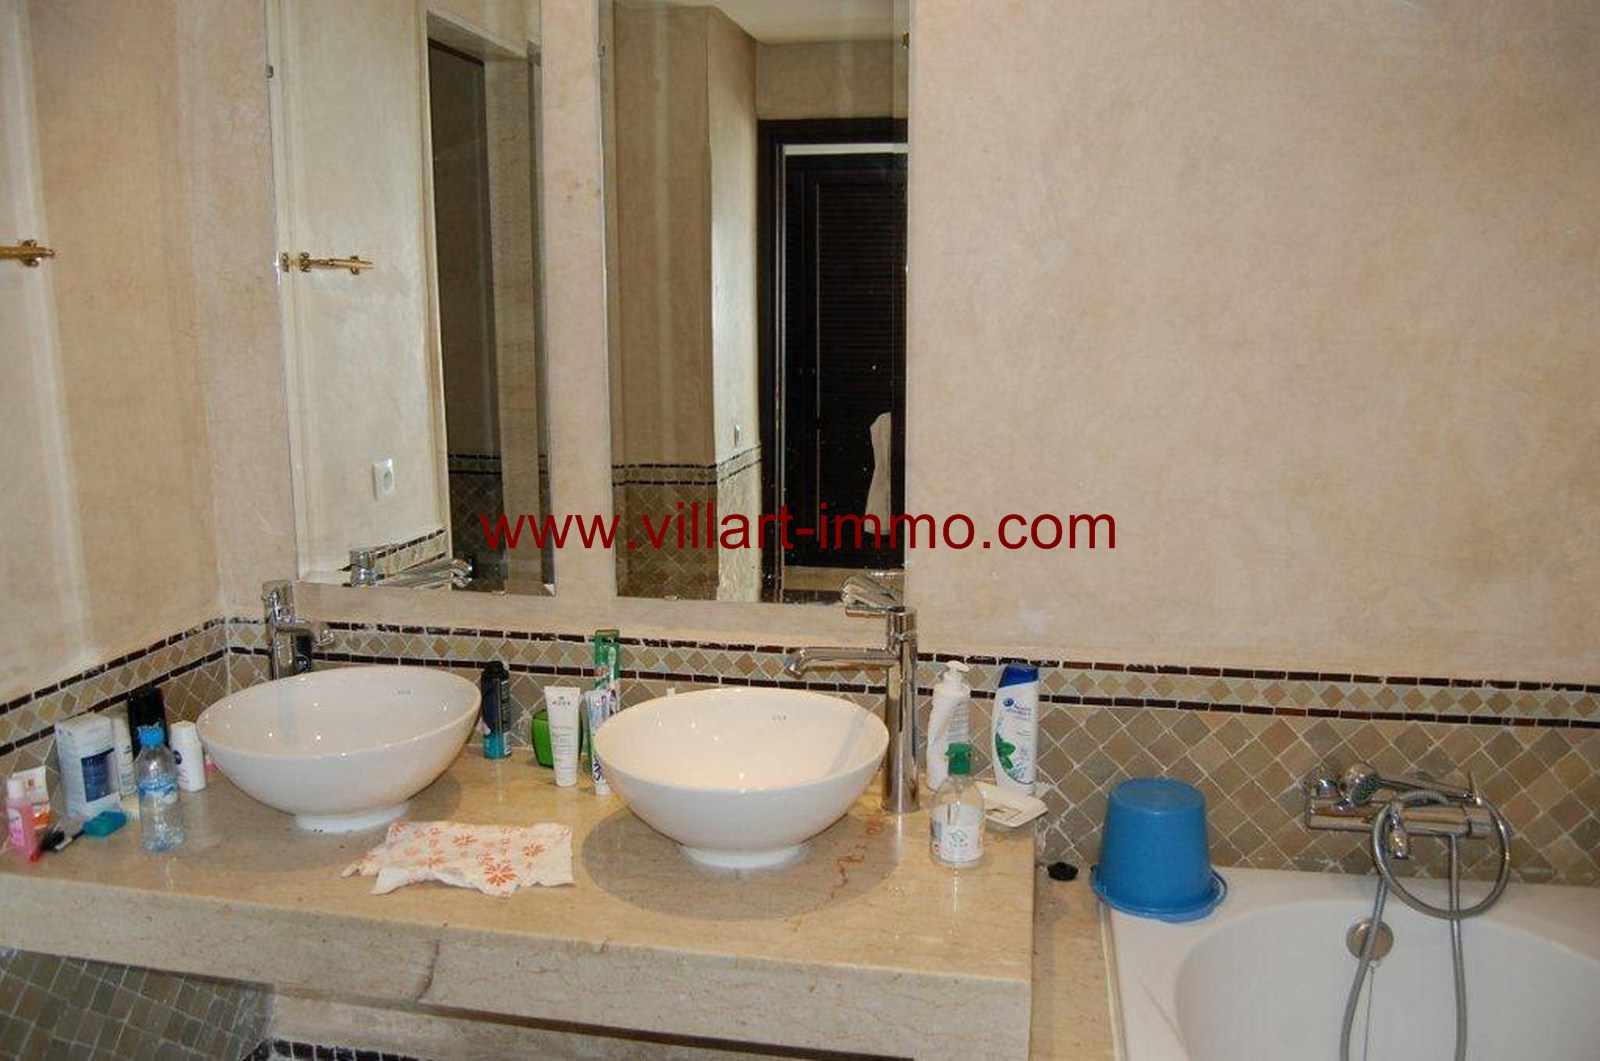 9-For-Sale-Villa-Tangier-Malabata-Bathroom 2-VV354-Villart Immo